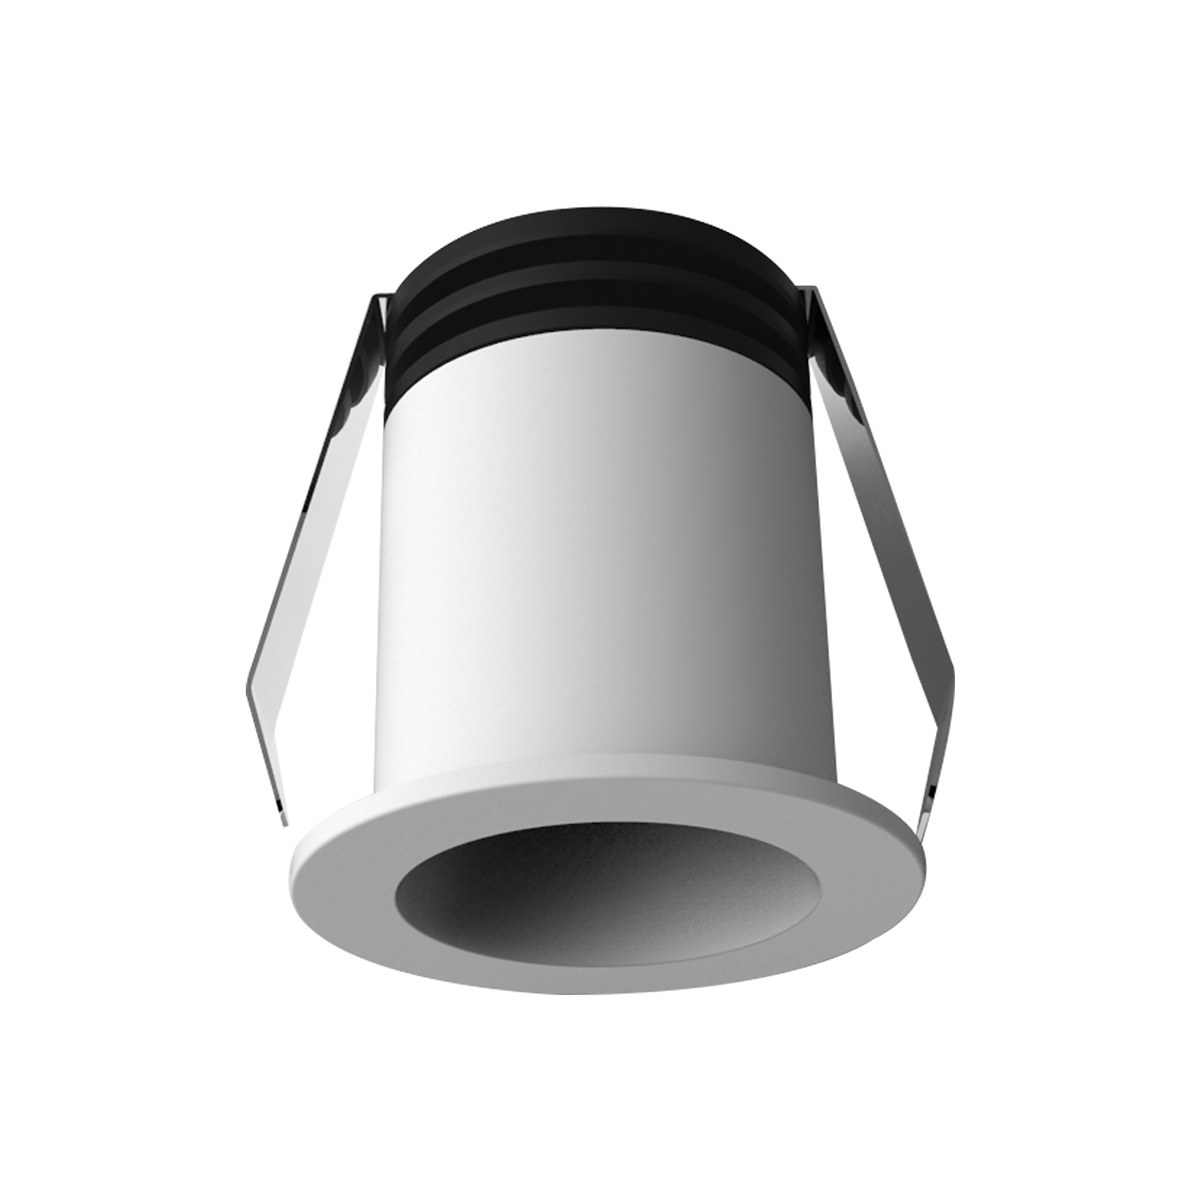 buy popular 00b46 9094f 4.5w Mini Downlight With Driver, 35mm Cut Out, IP20 - Rapid LED